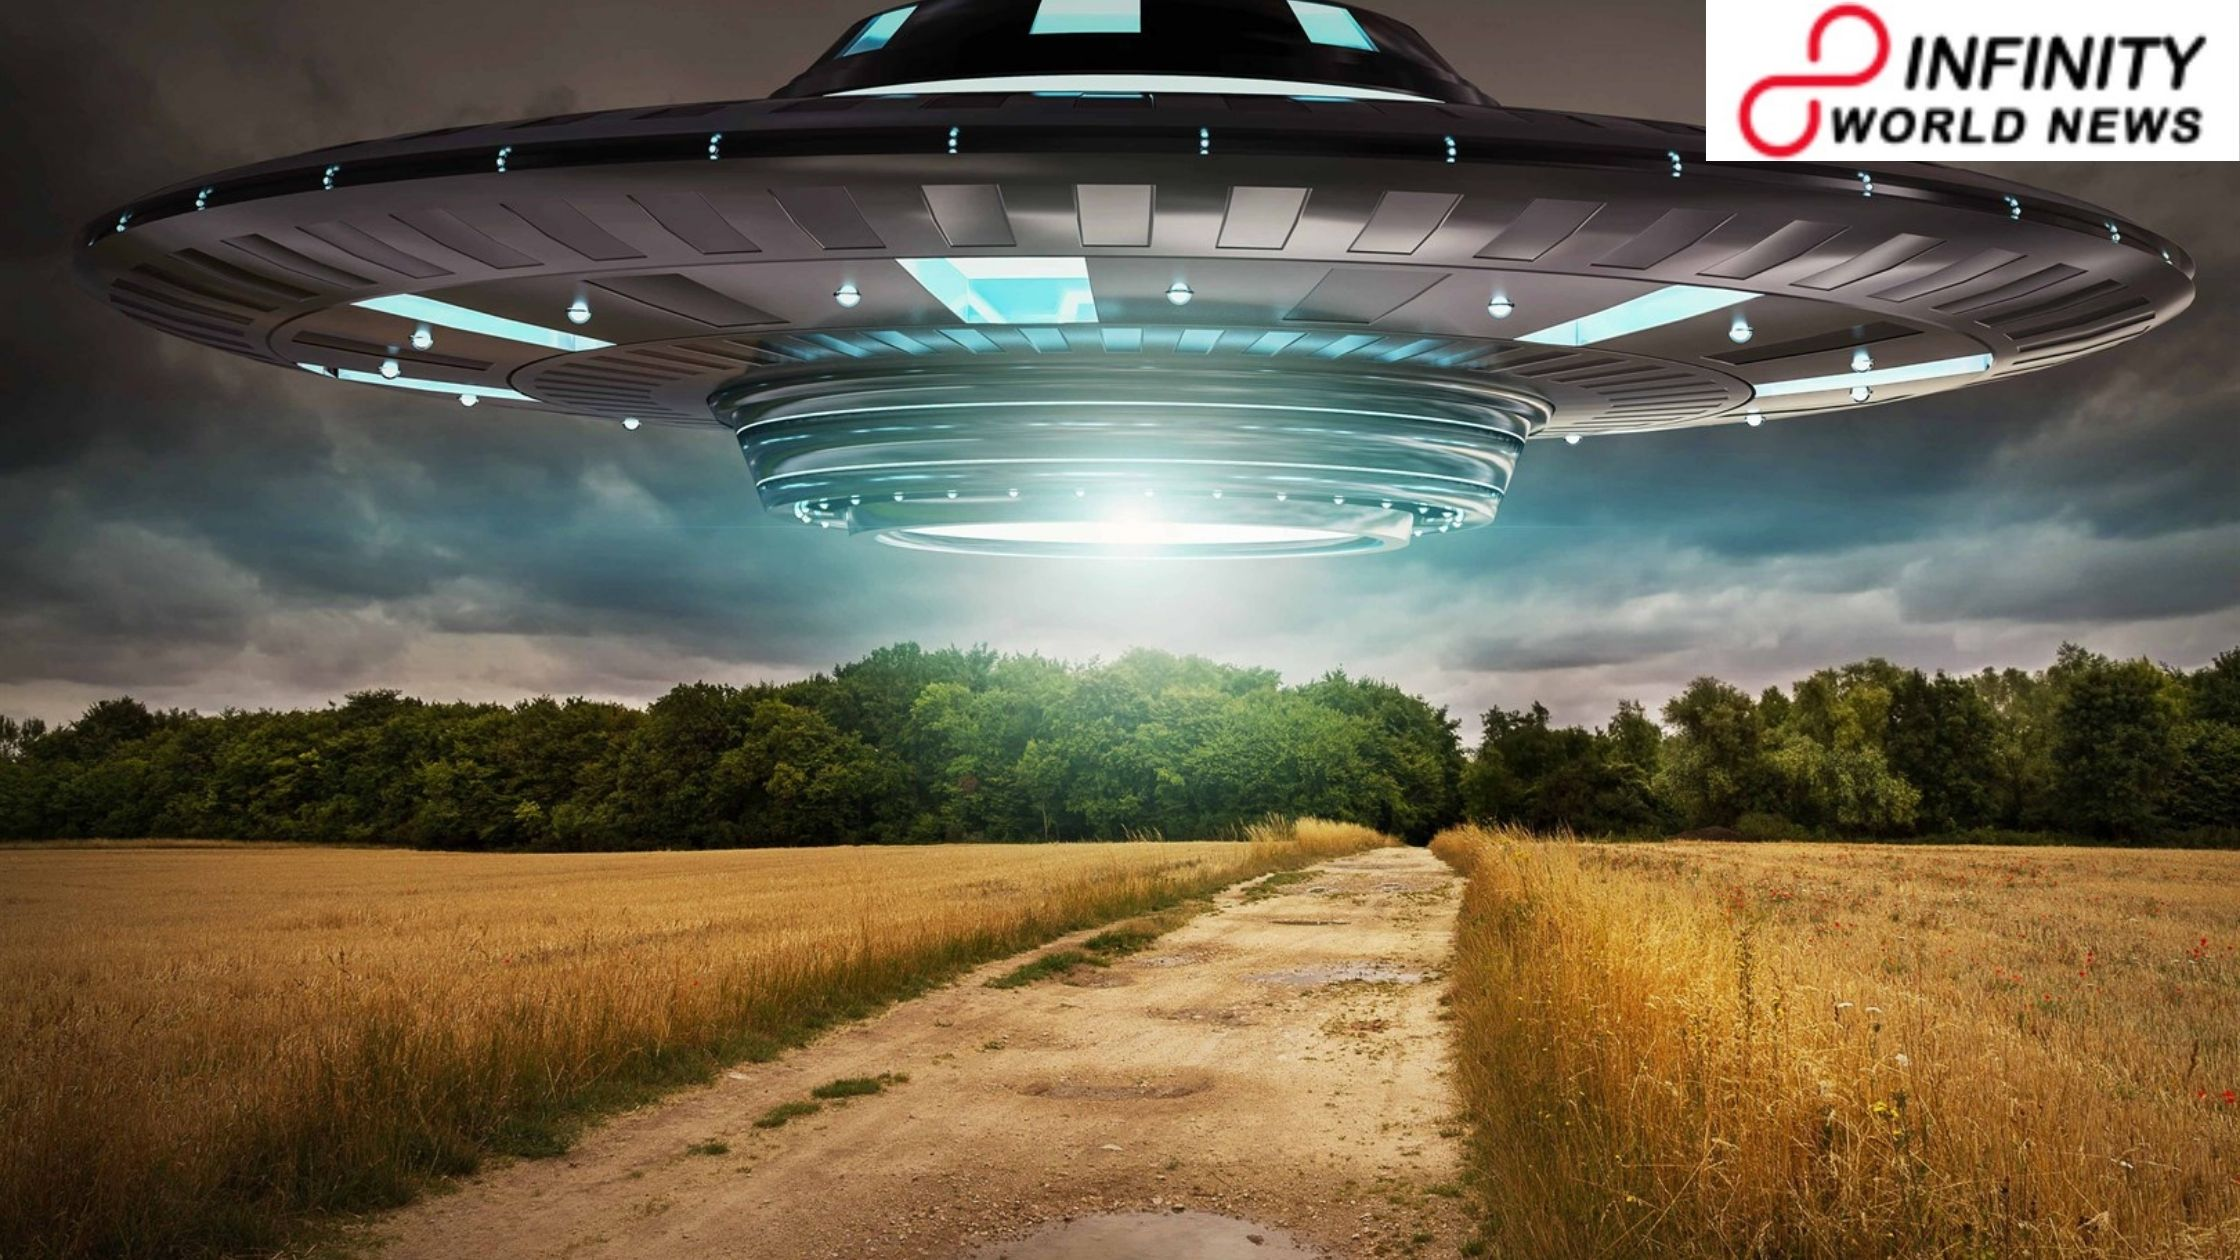 Spilt Pentagon Photo Seems to Capture a UFO. Is it Real This Time?